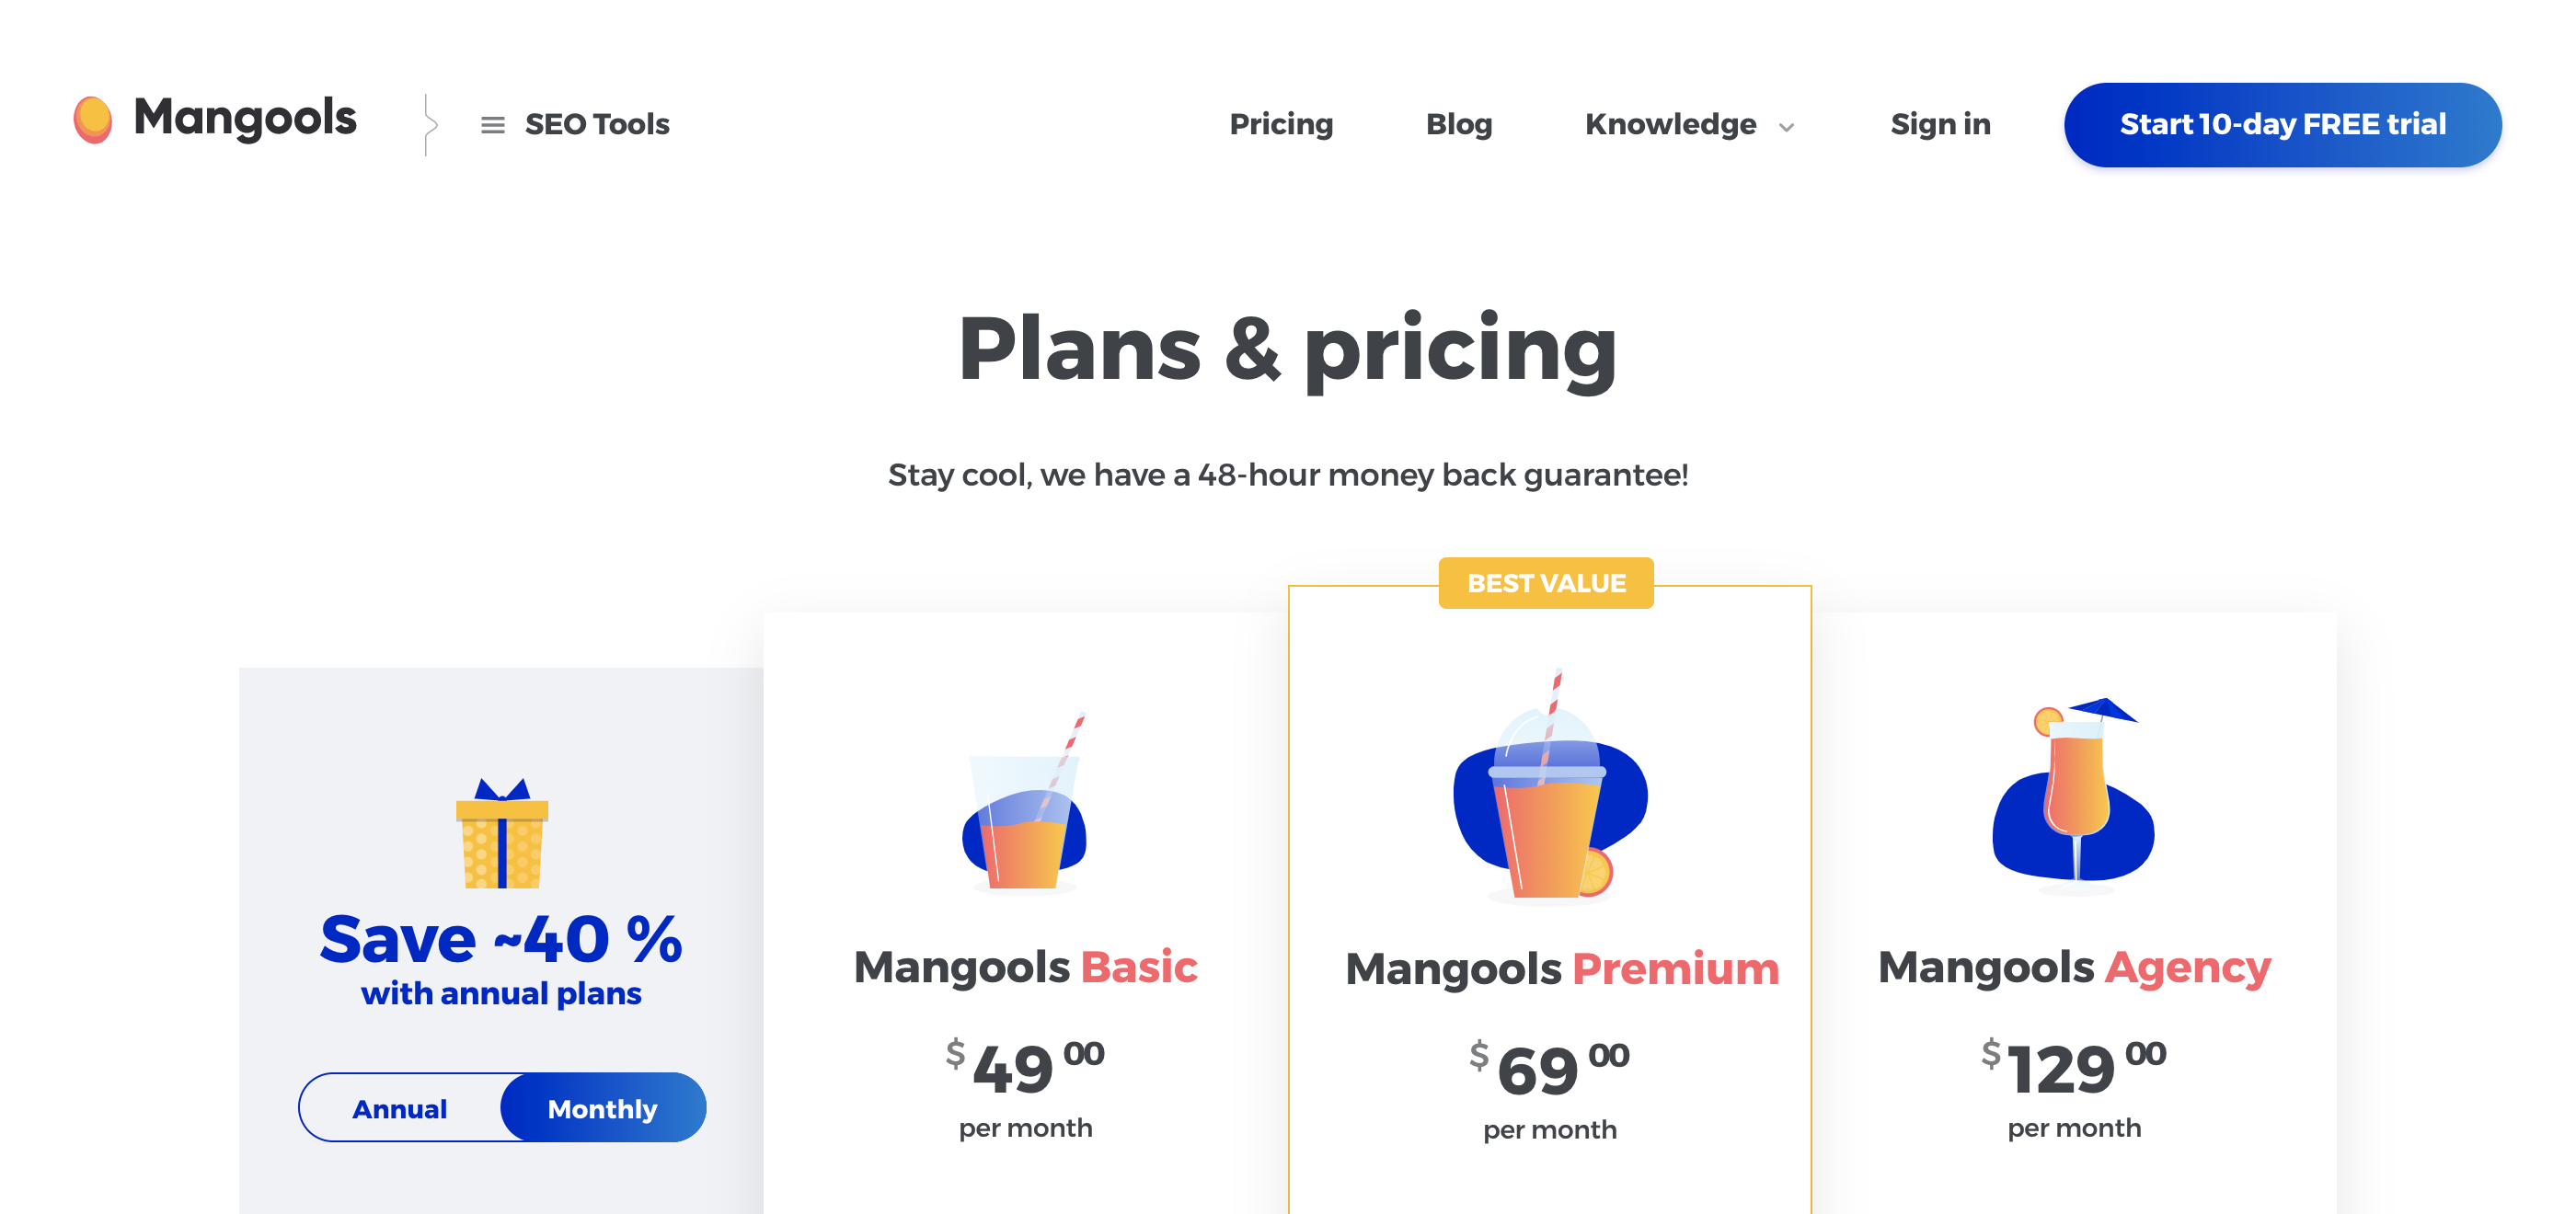 Mangools Plans and Pricing, KWFinder Pricing